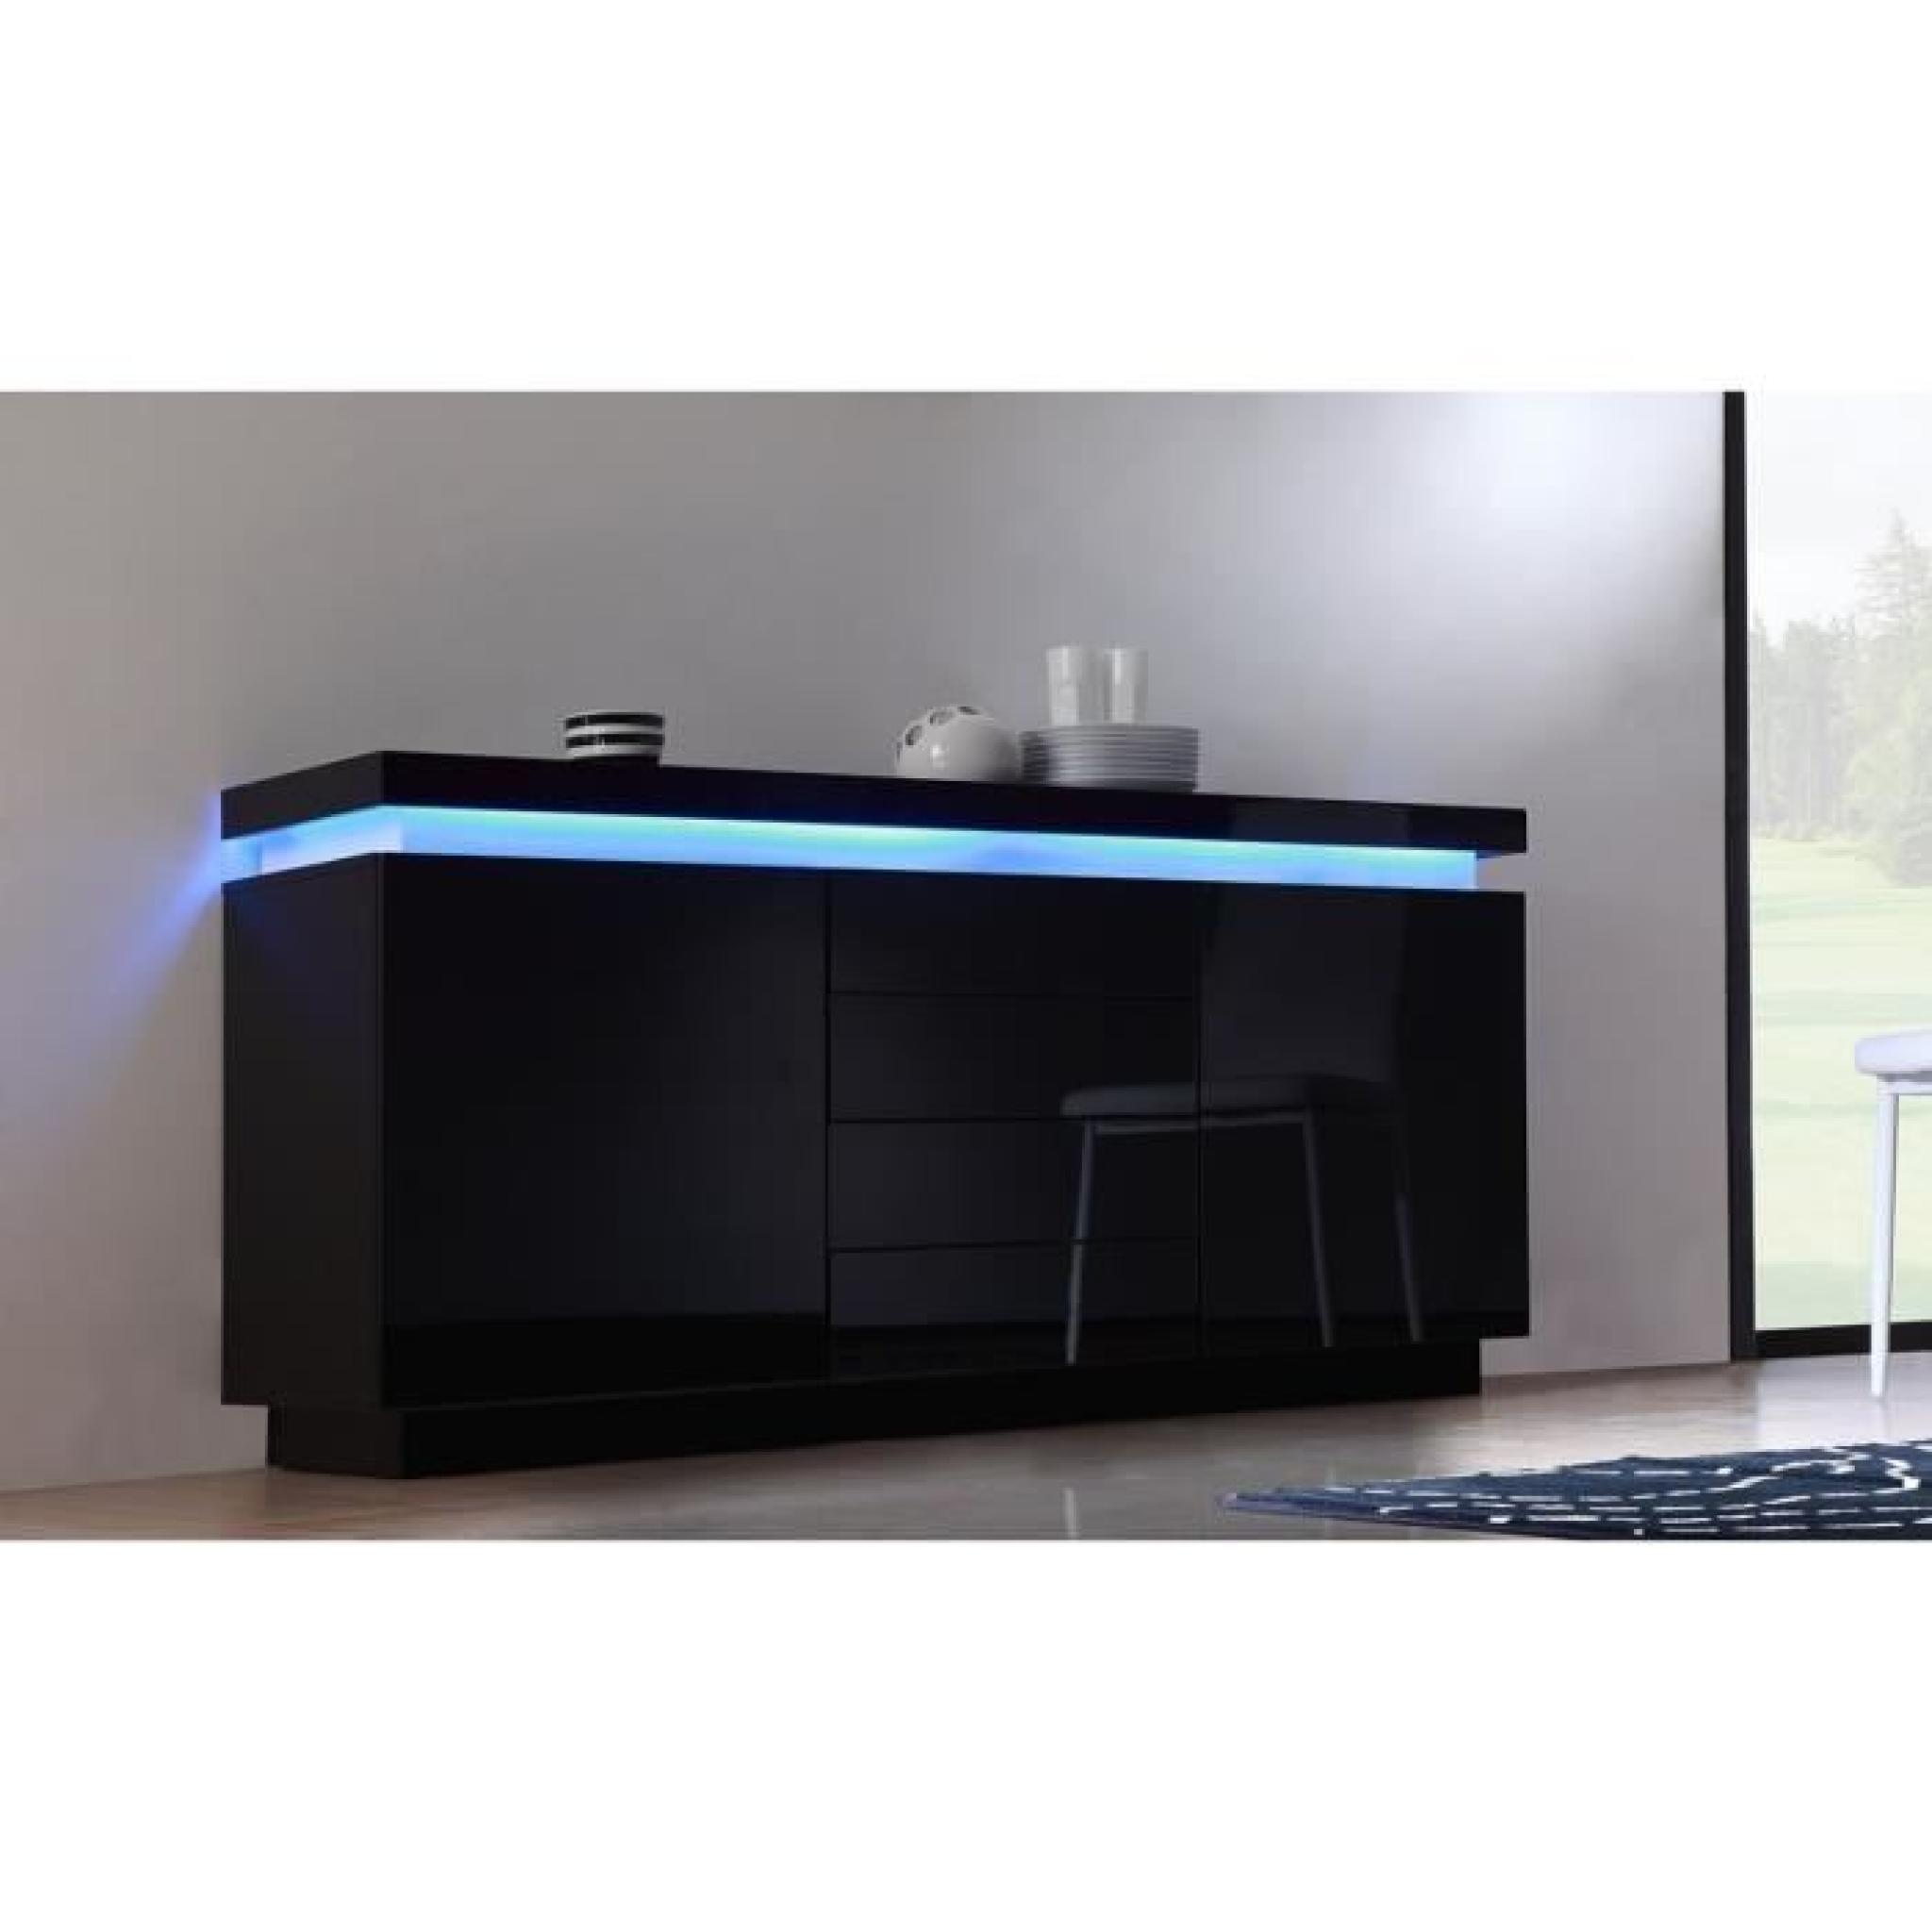 flash buffet laqu noir 175cm avec leds multicolores achat vente buffet pas cher couleur et. Black Bedroom Furniture Sets. Home Design Ideas